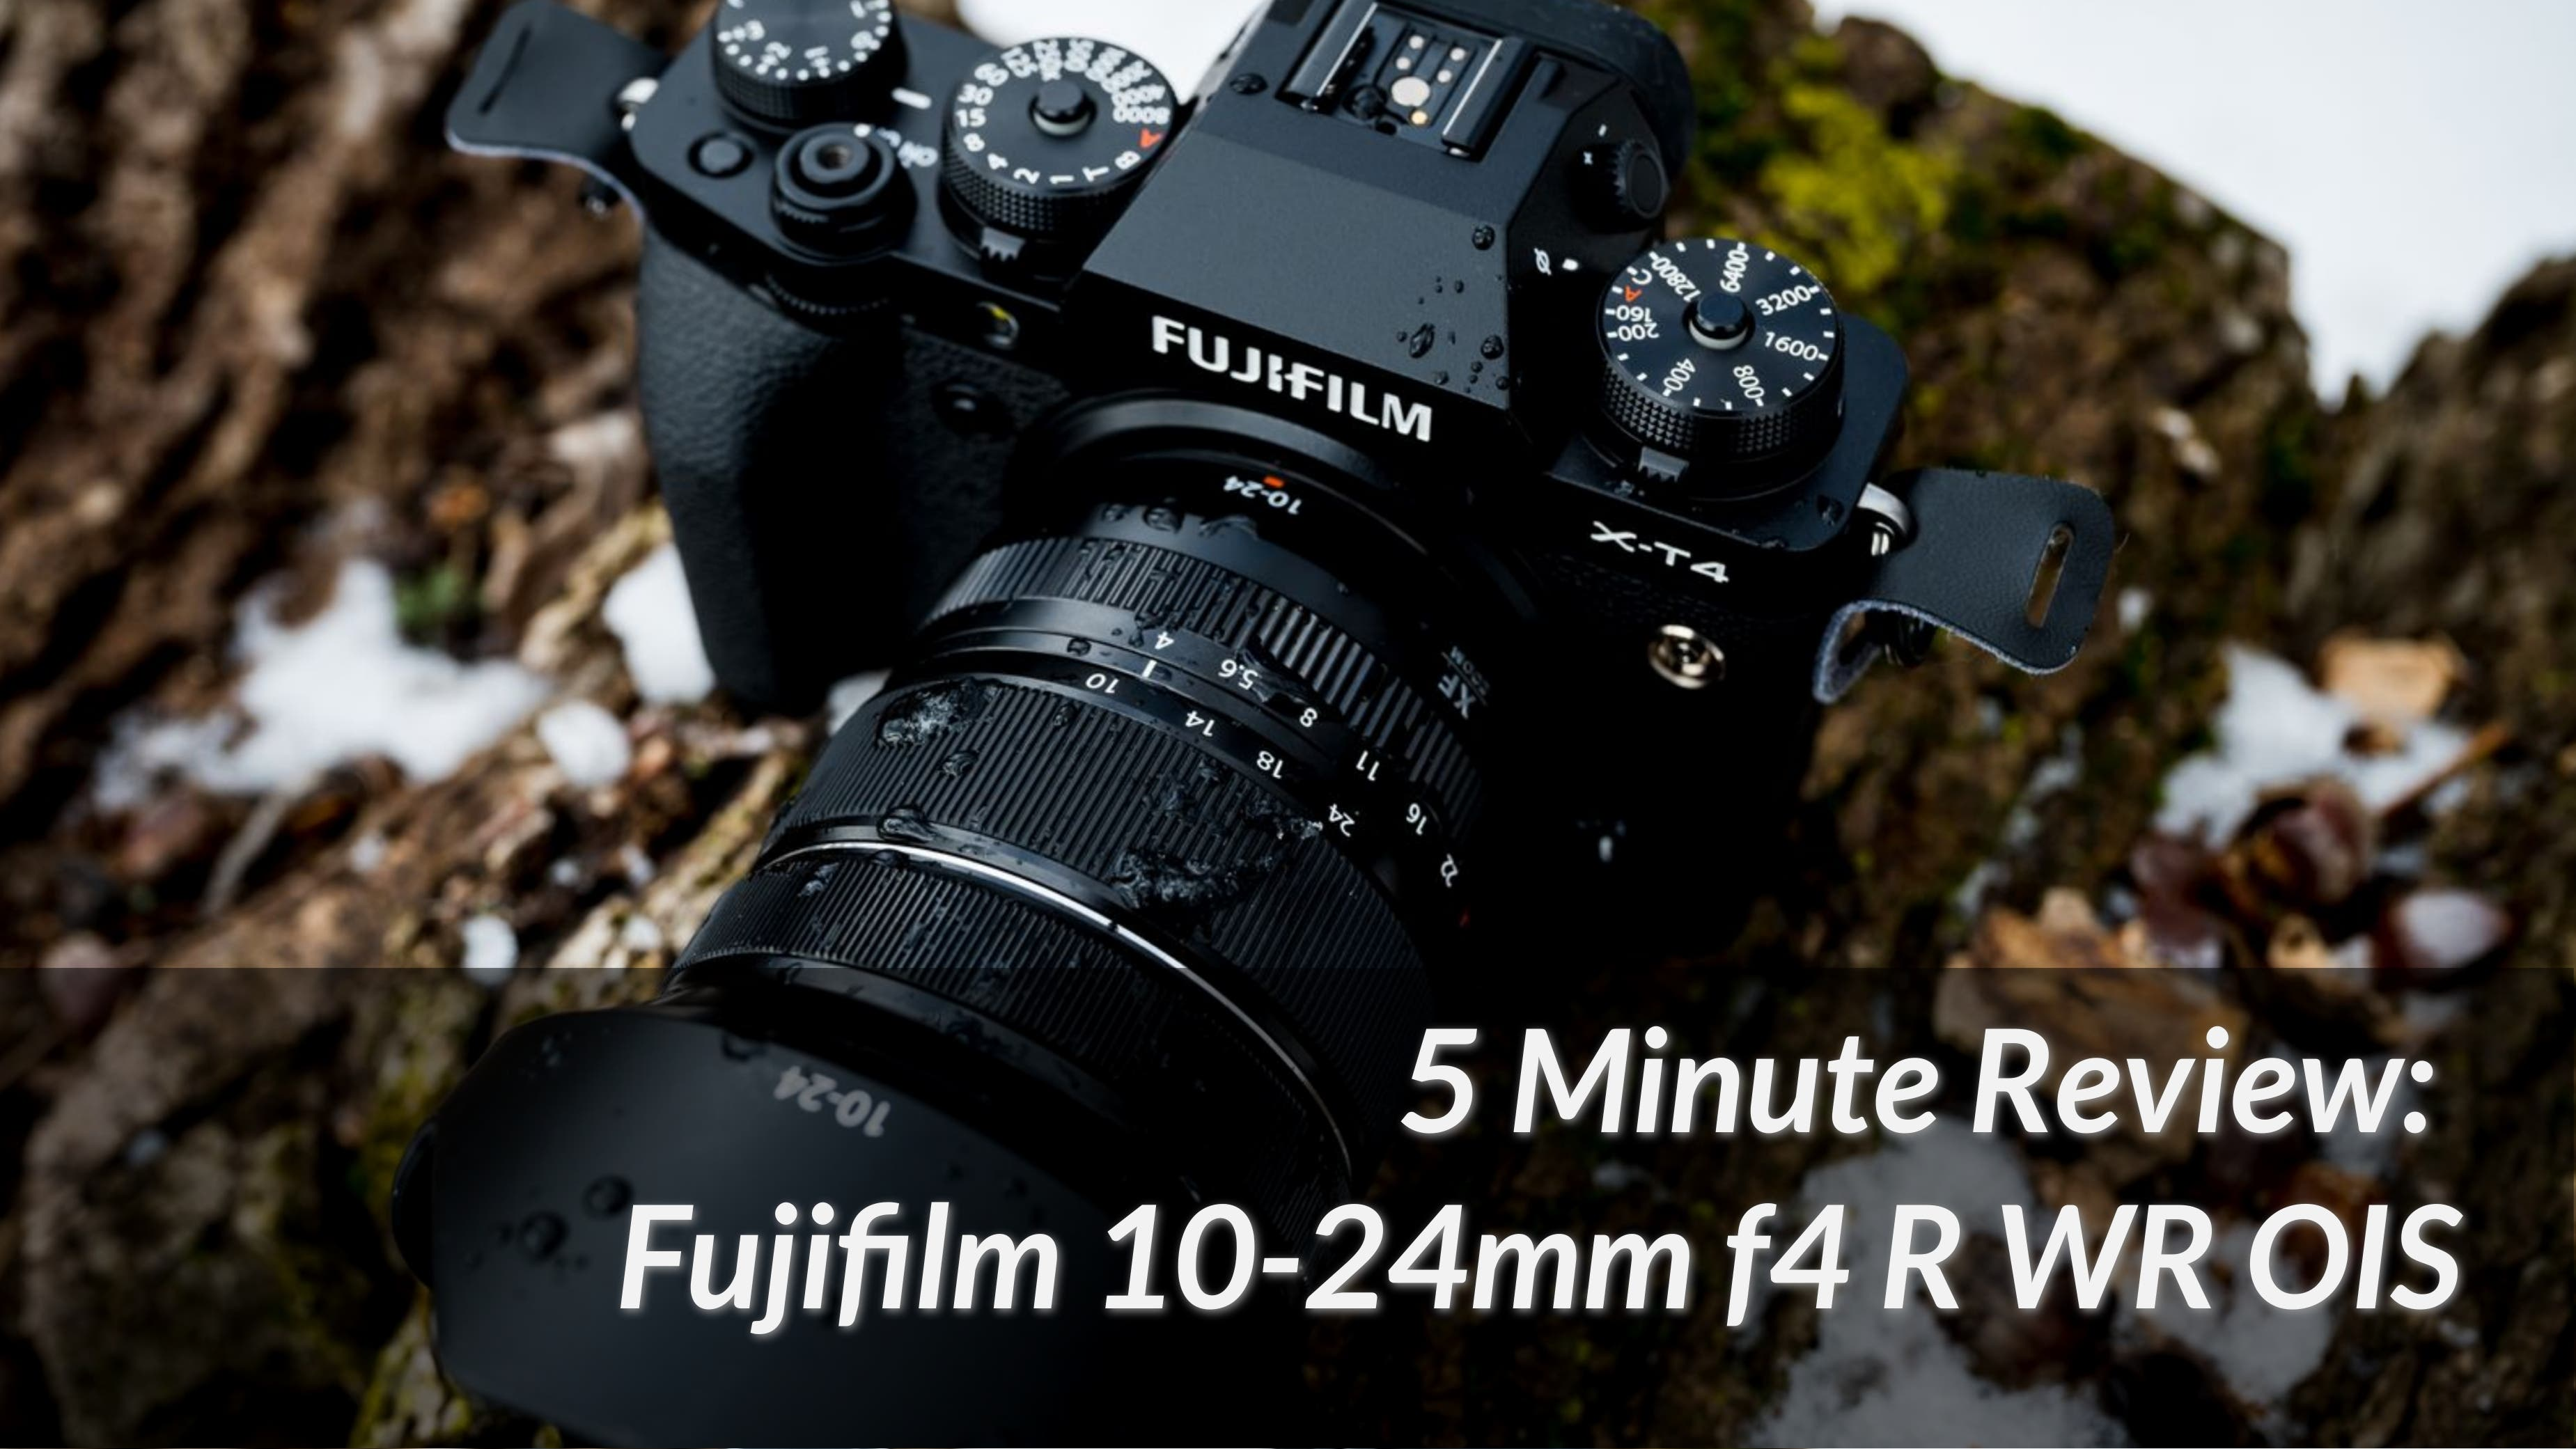 5 Minute Lens Review: How Is the Fujifilm 10-24mm F4 R WR OIS?